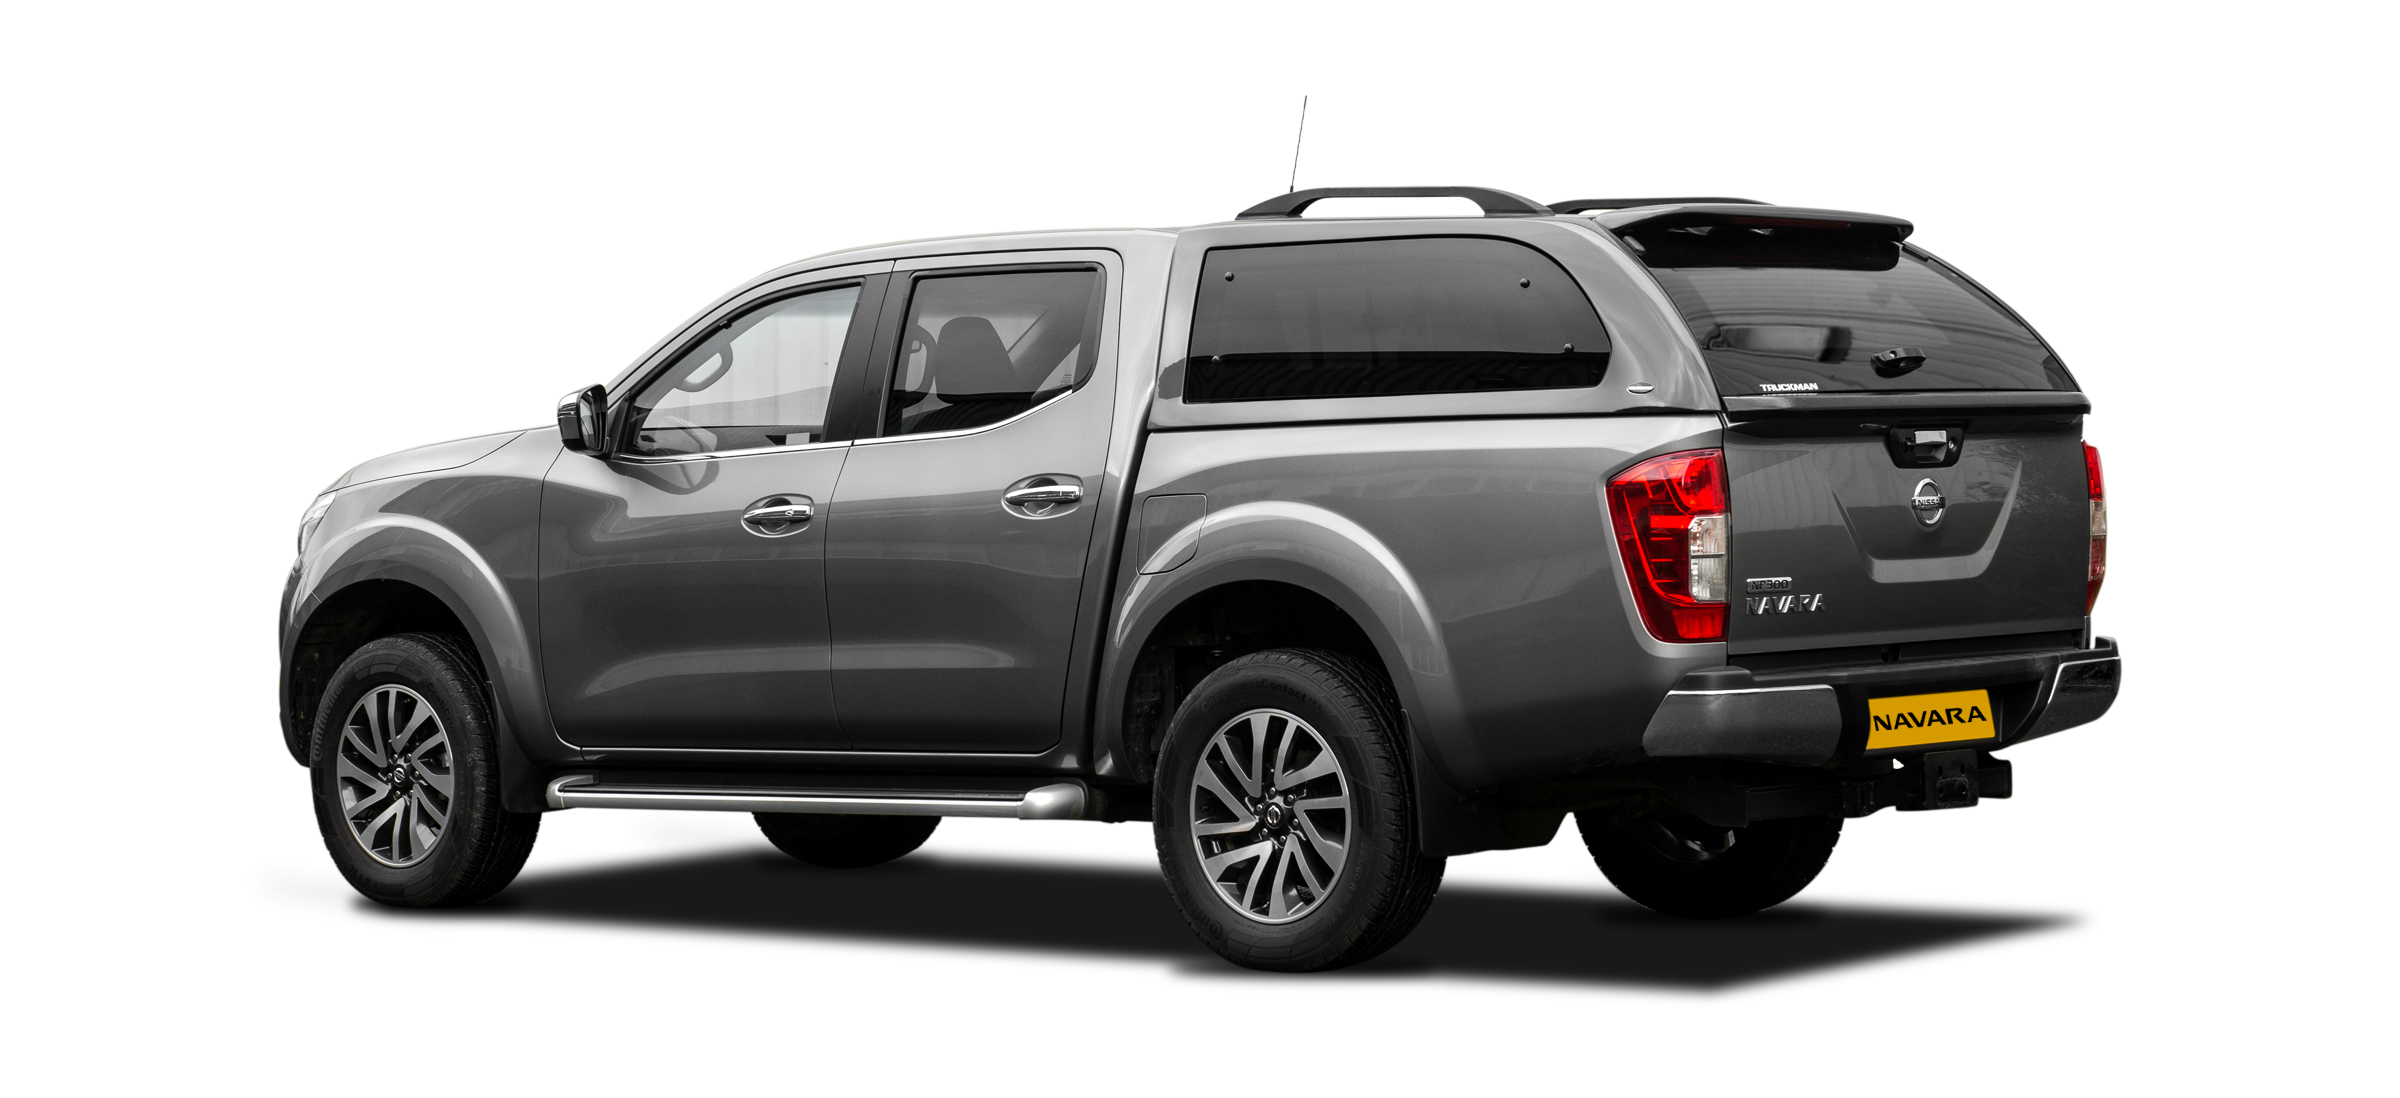 nissan navara accessories 2016 models newer nissan. Black Bedroom Furniture Sets. Home Design Ideas